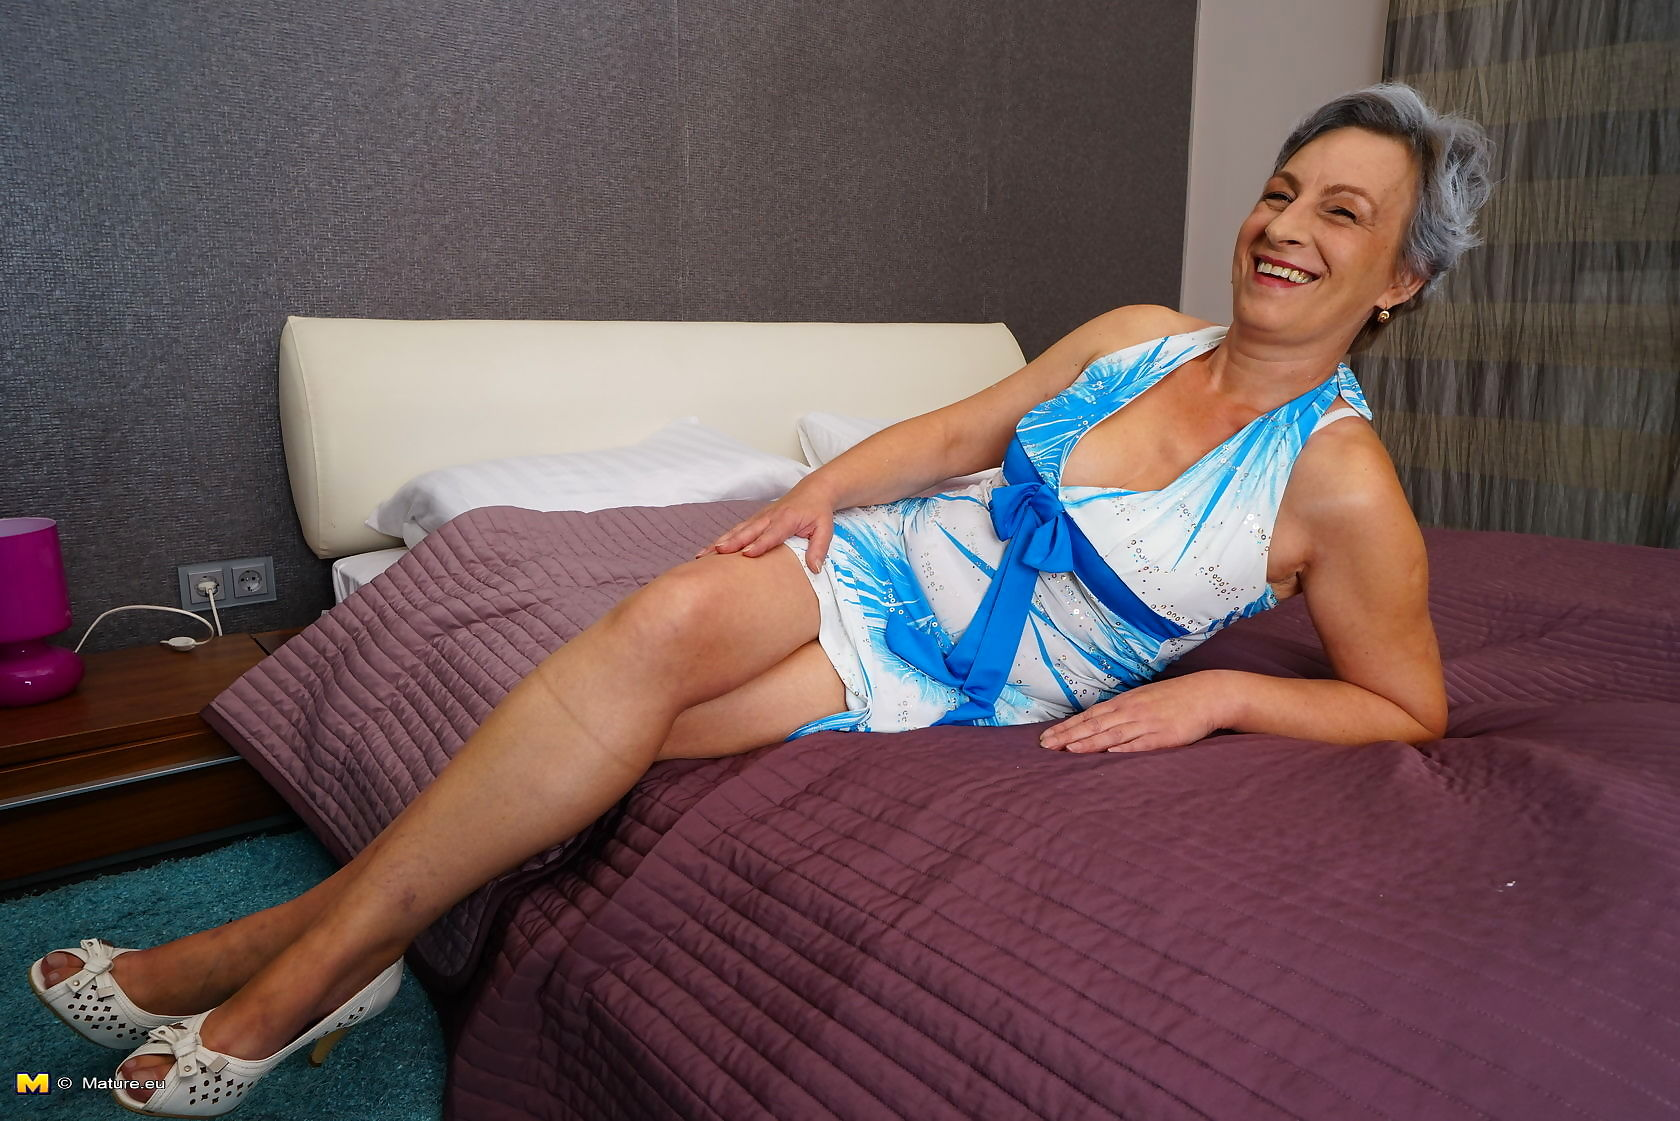 This horny mature lady loves to play alone - part 3502